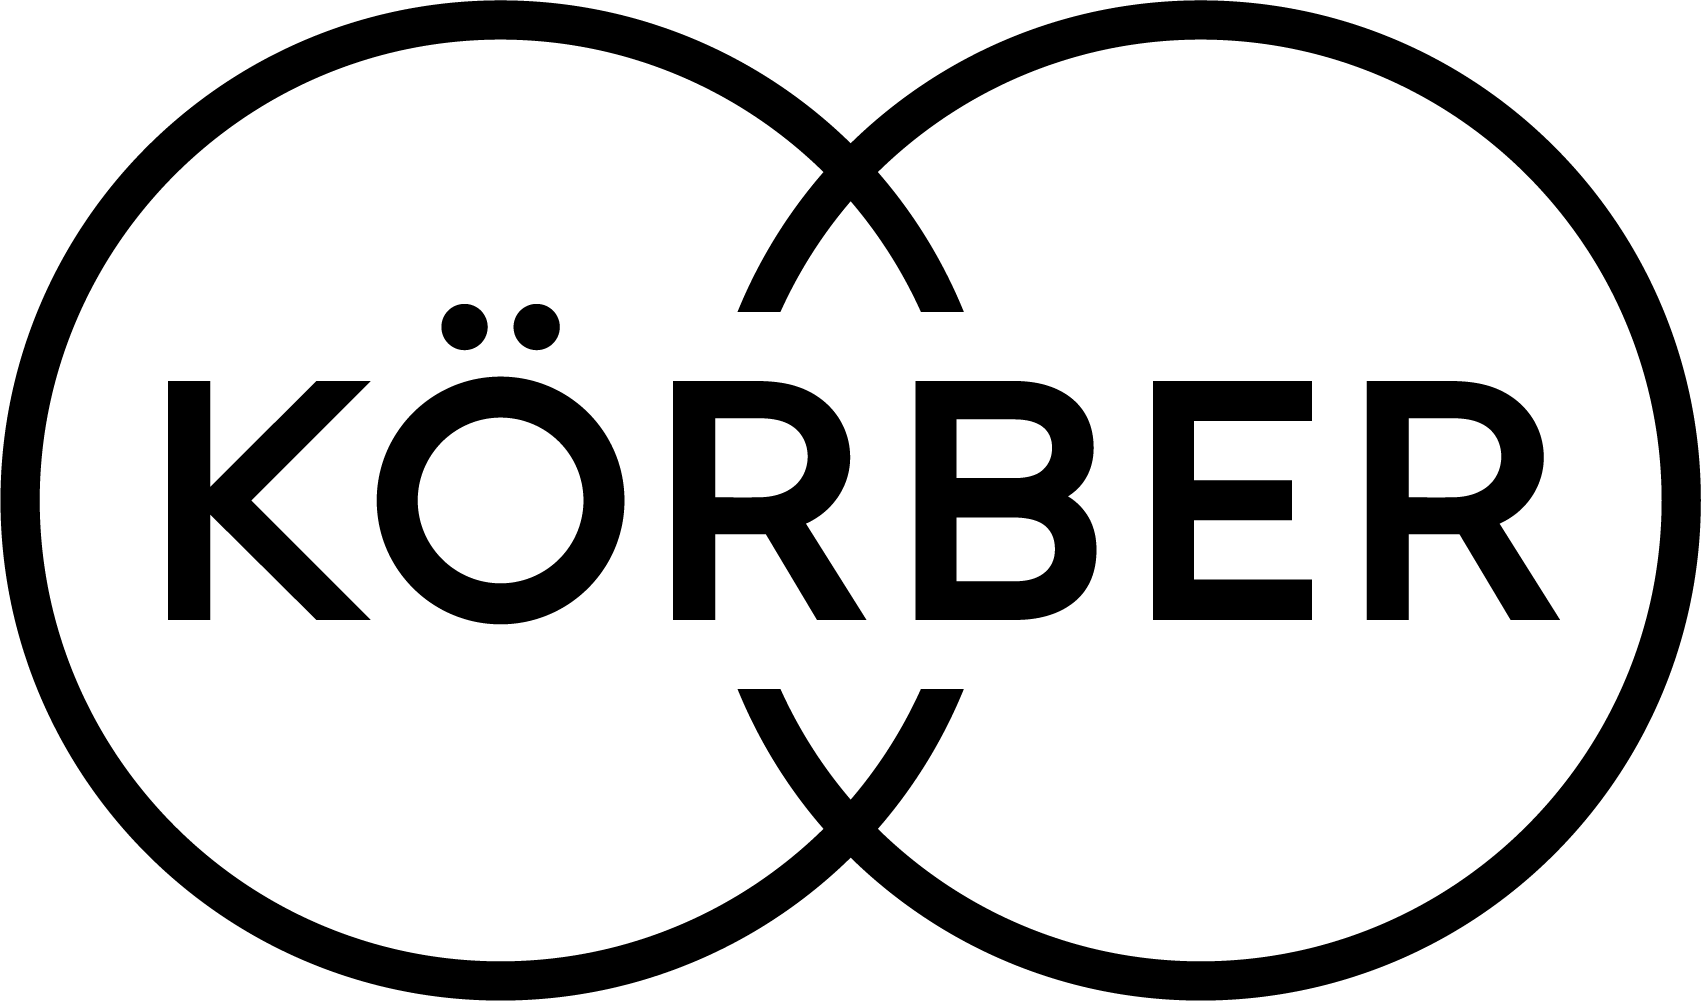 Körber monomaterial packaging solutions